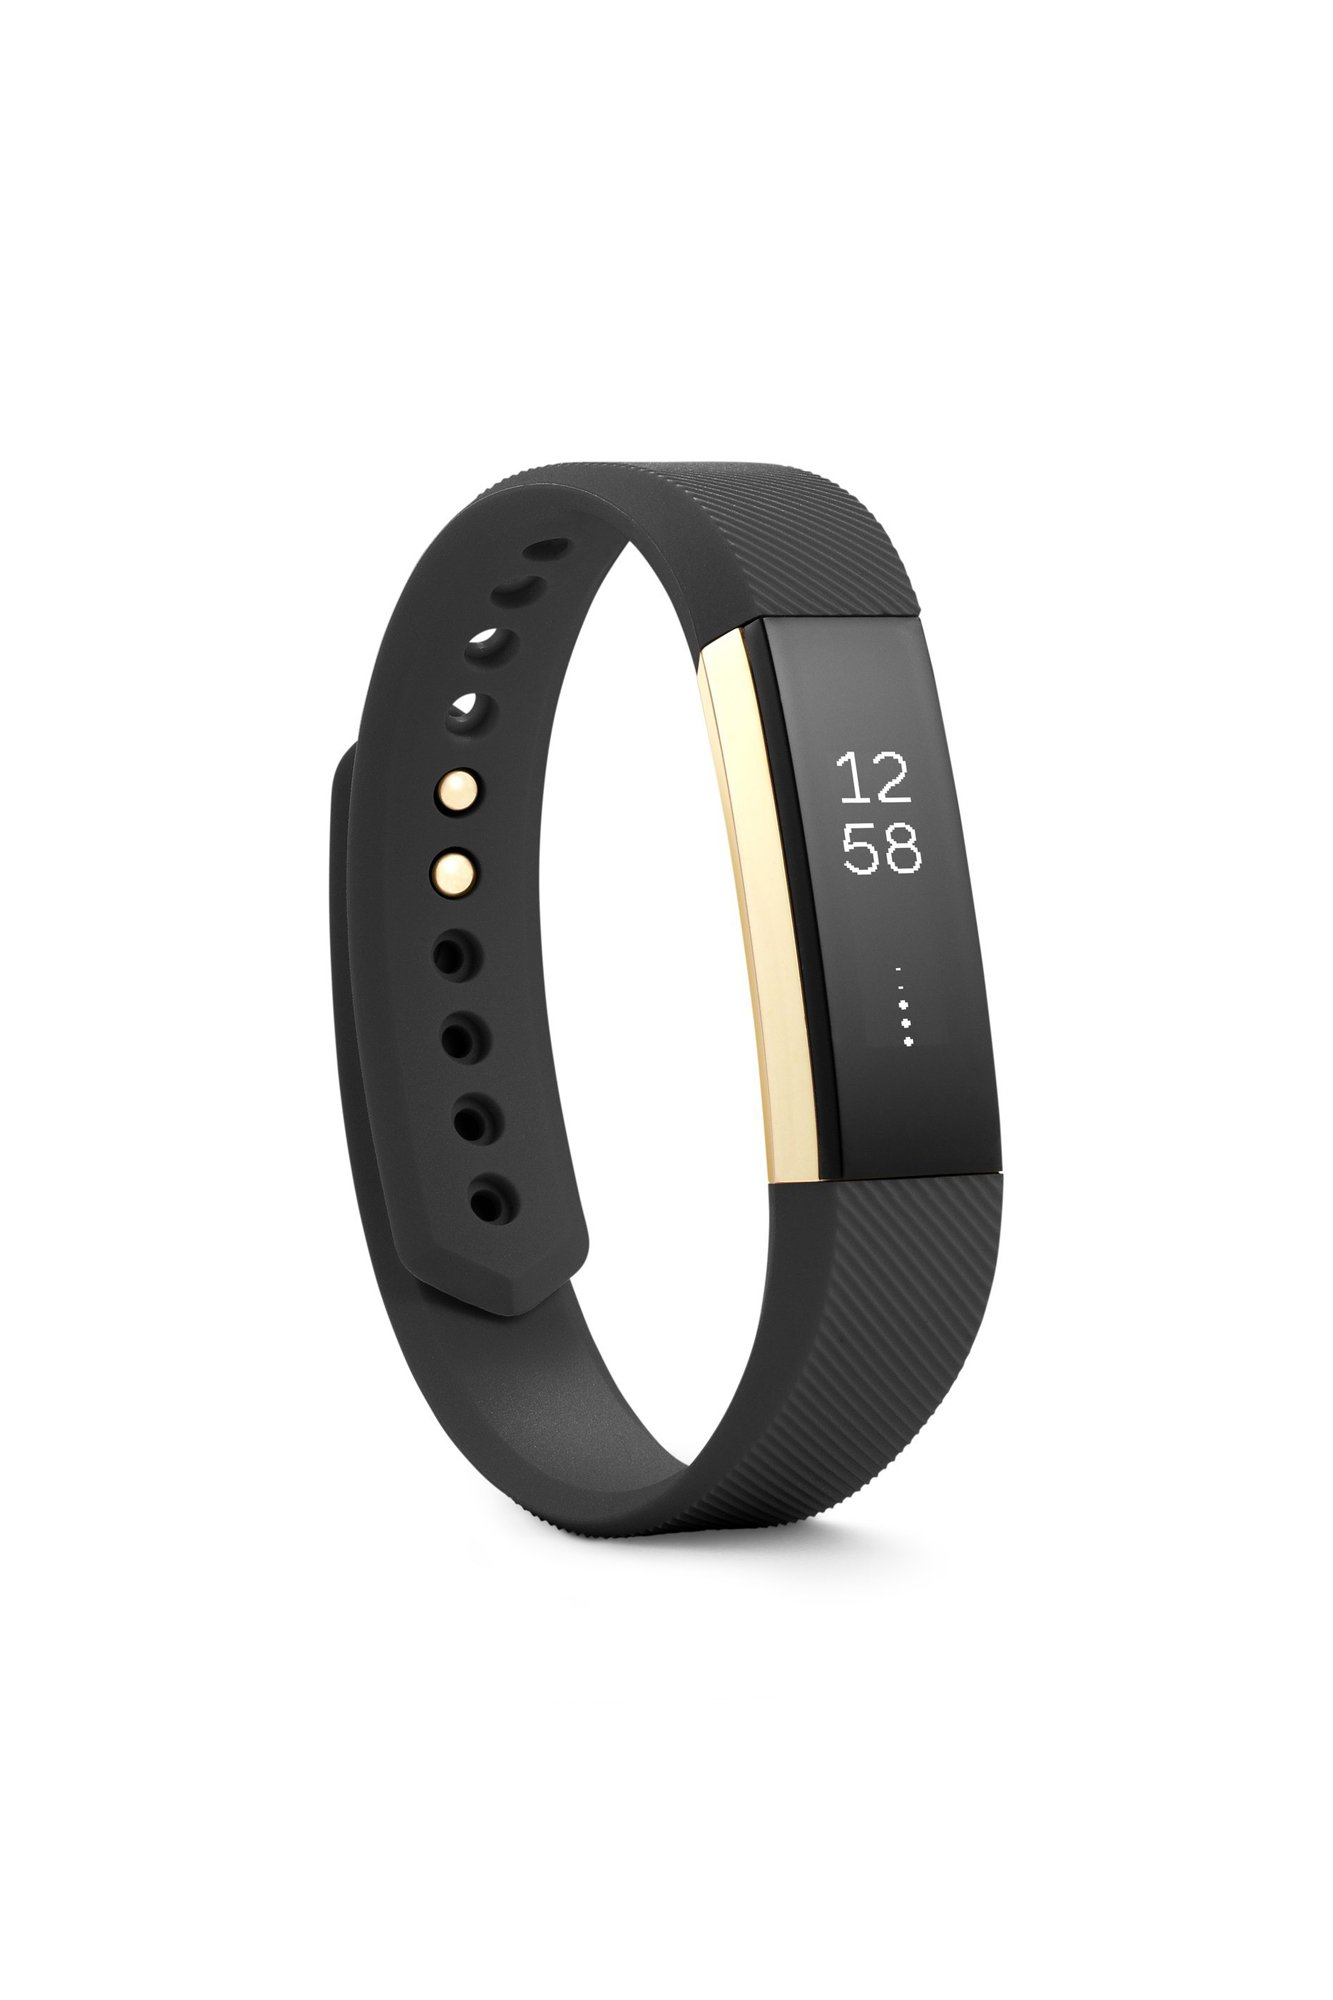 Fitbit Alta Fitness Tracker, Special Edition Gold, Black, Small (US Version) by Fitbit (Image #1)